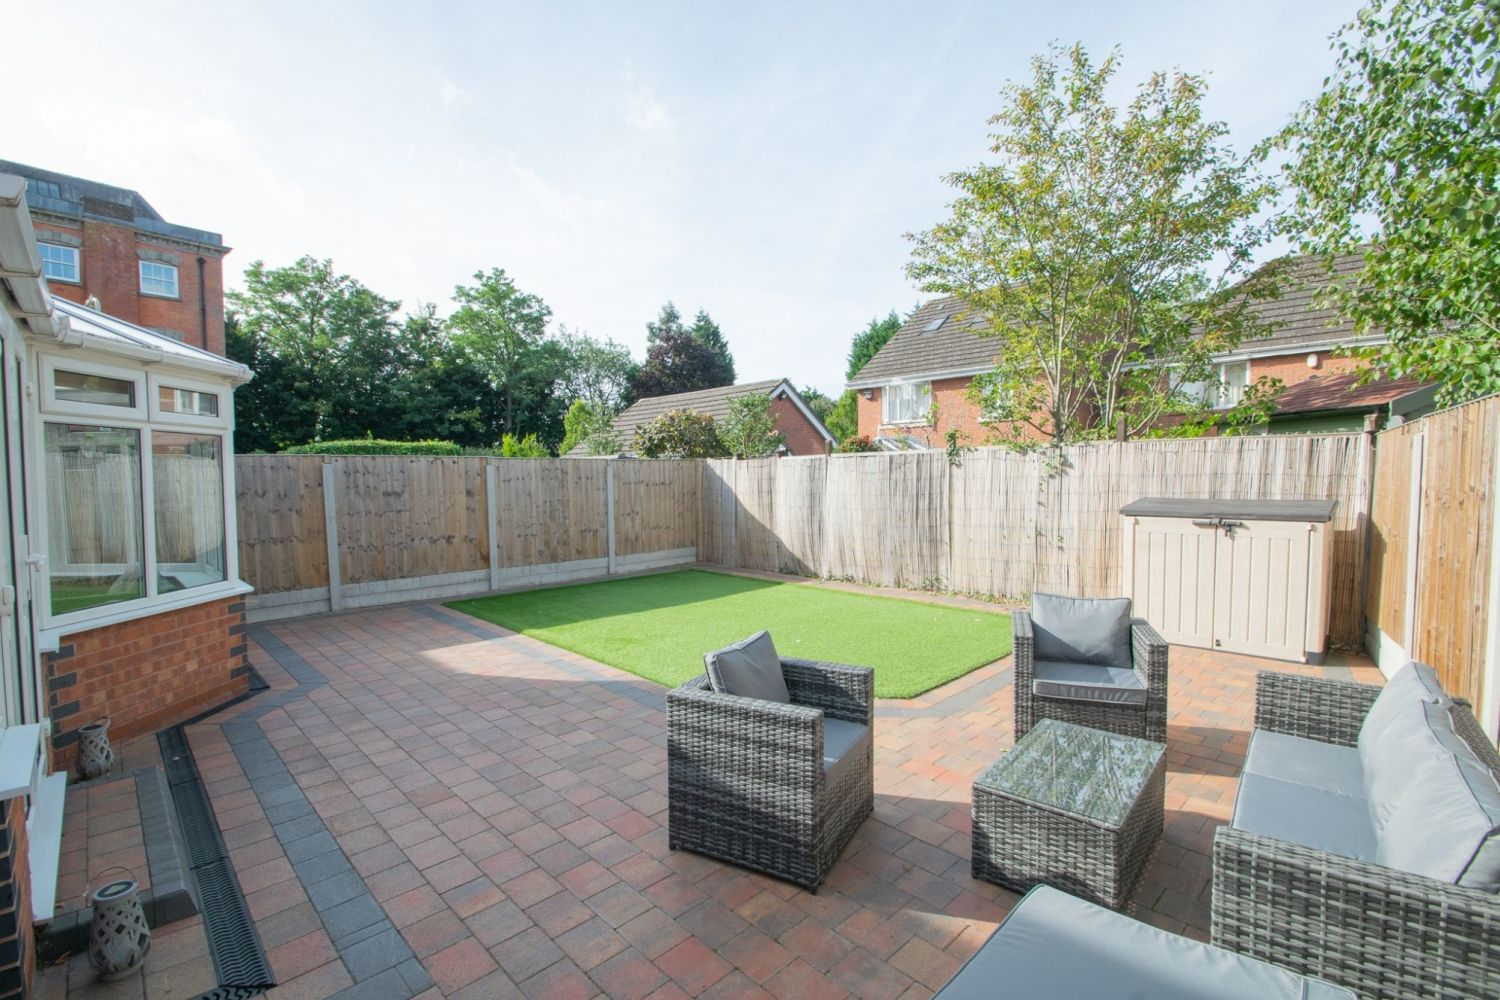 3 bed detached for sale in Batchelor Close, Amblecote  - Property Image 21